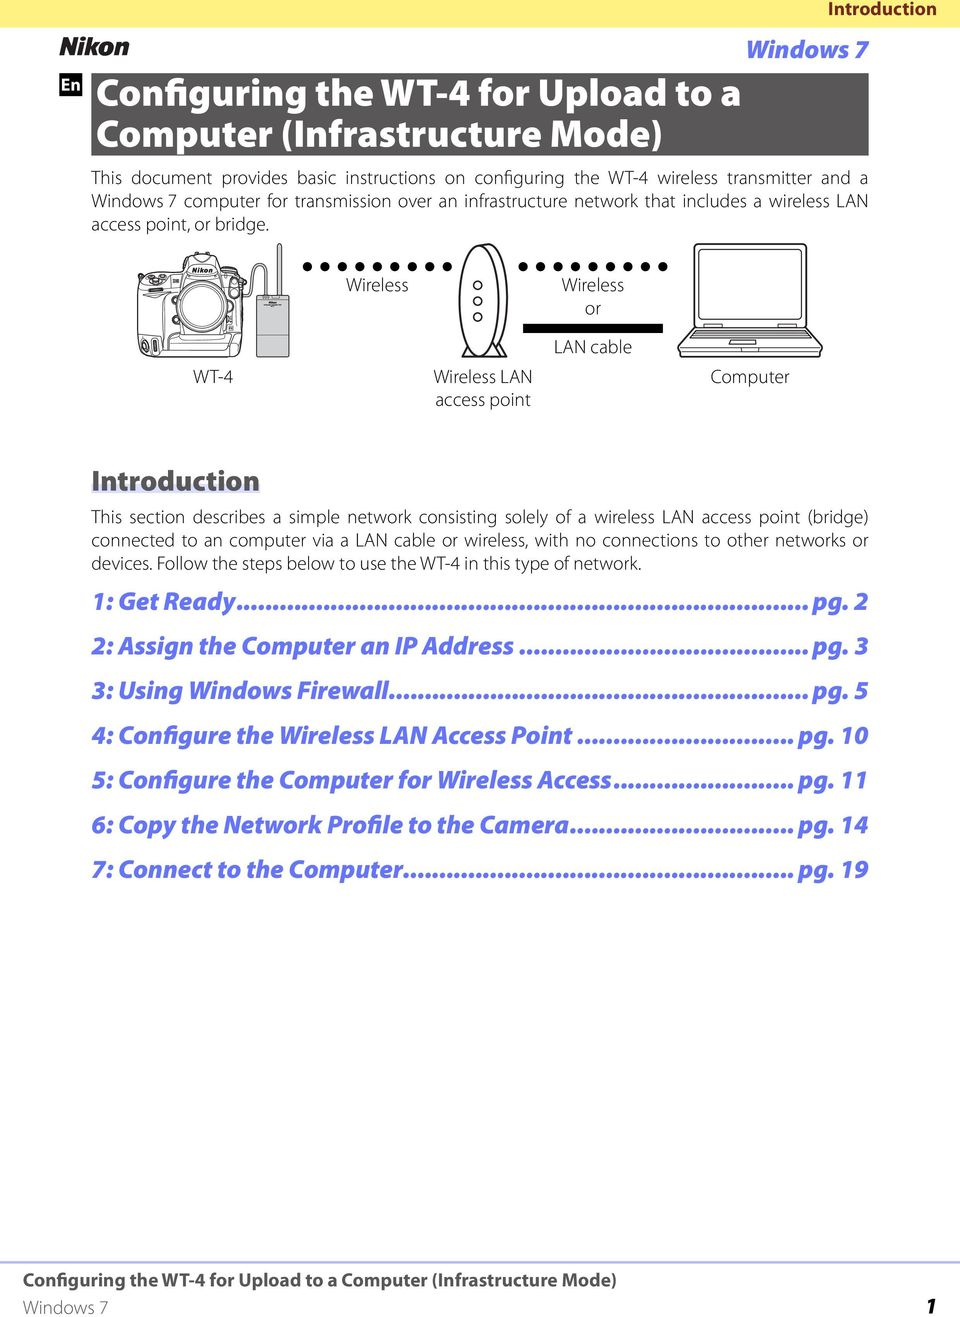 Wireless Wireless or WT-4 Wireless LAN access point LAN cable Computer Introduction This section describes a simple network consisting solely of a wireless LAN access point (bridge) connected to an